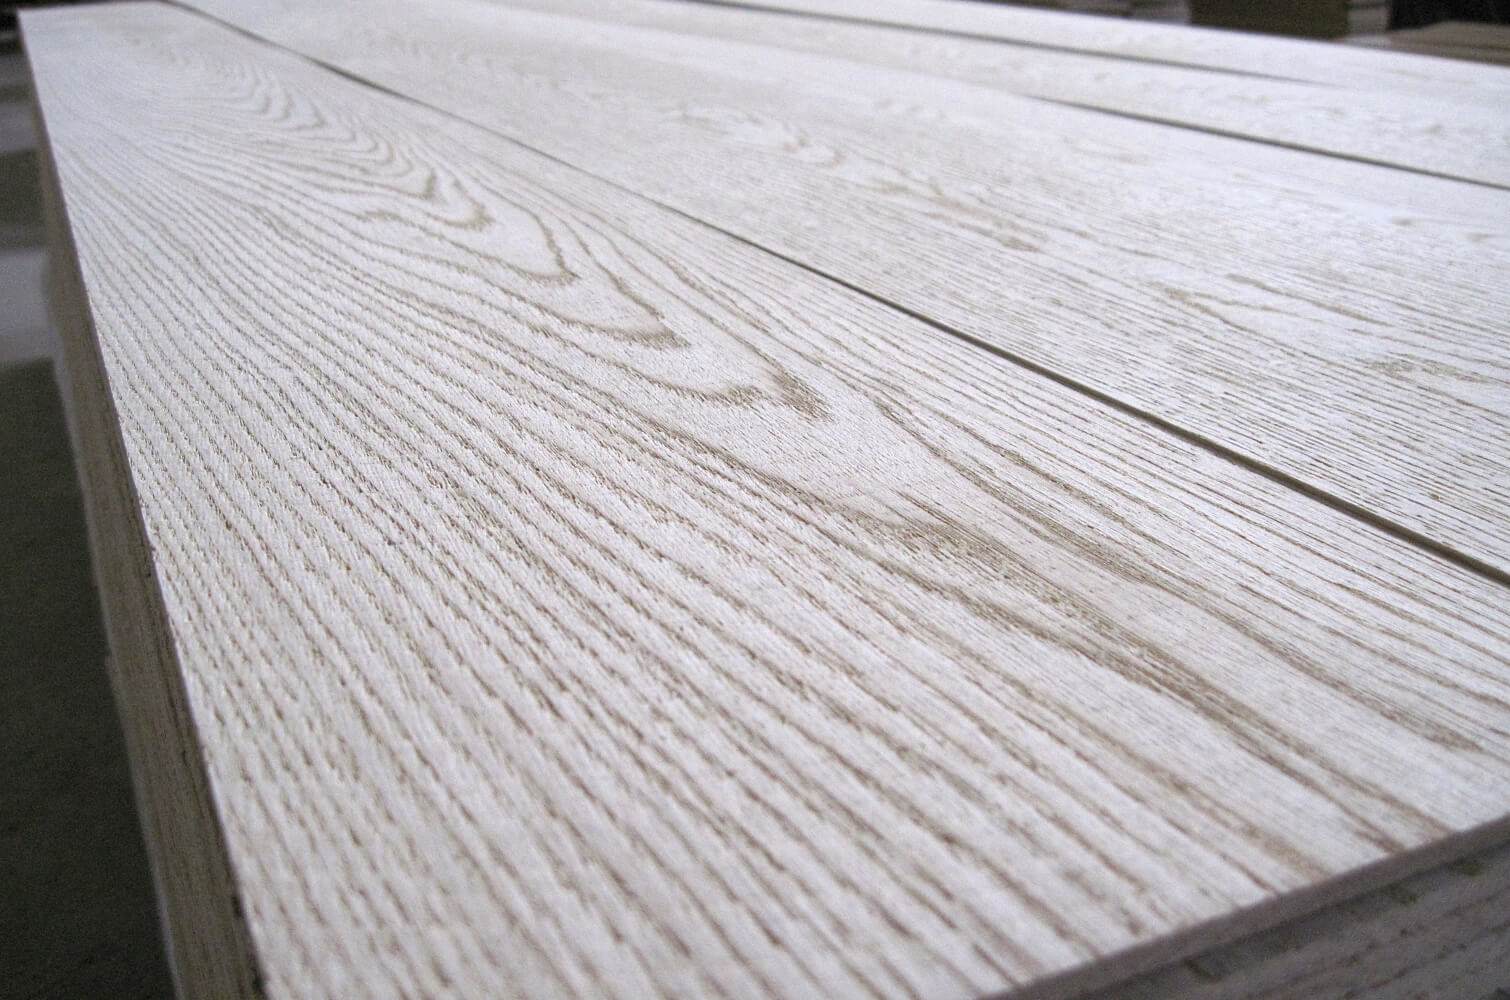 LLC IE Ukrlisexport, we produce and export lamellas (sawn veneer) from oak, beech, ash